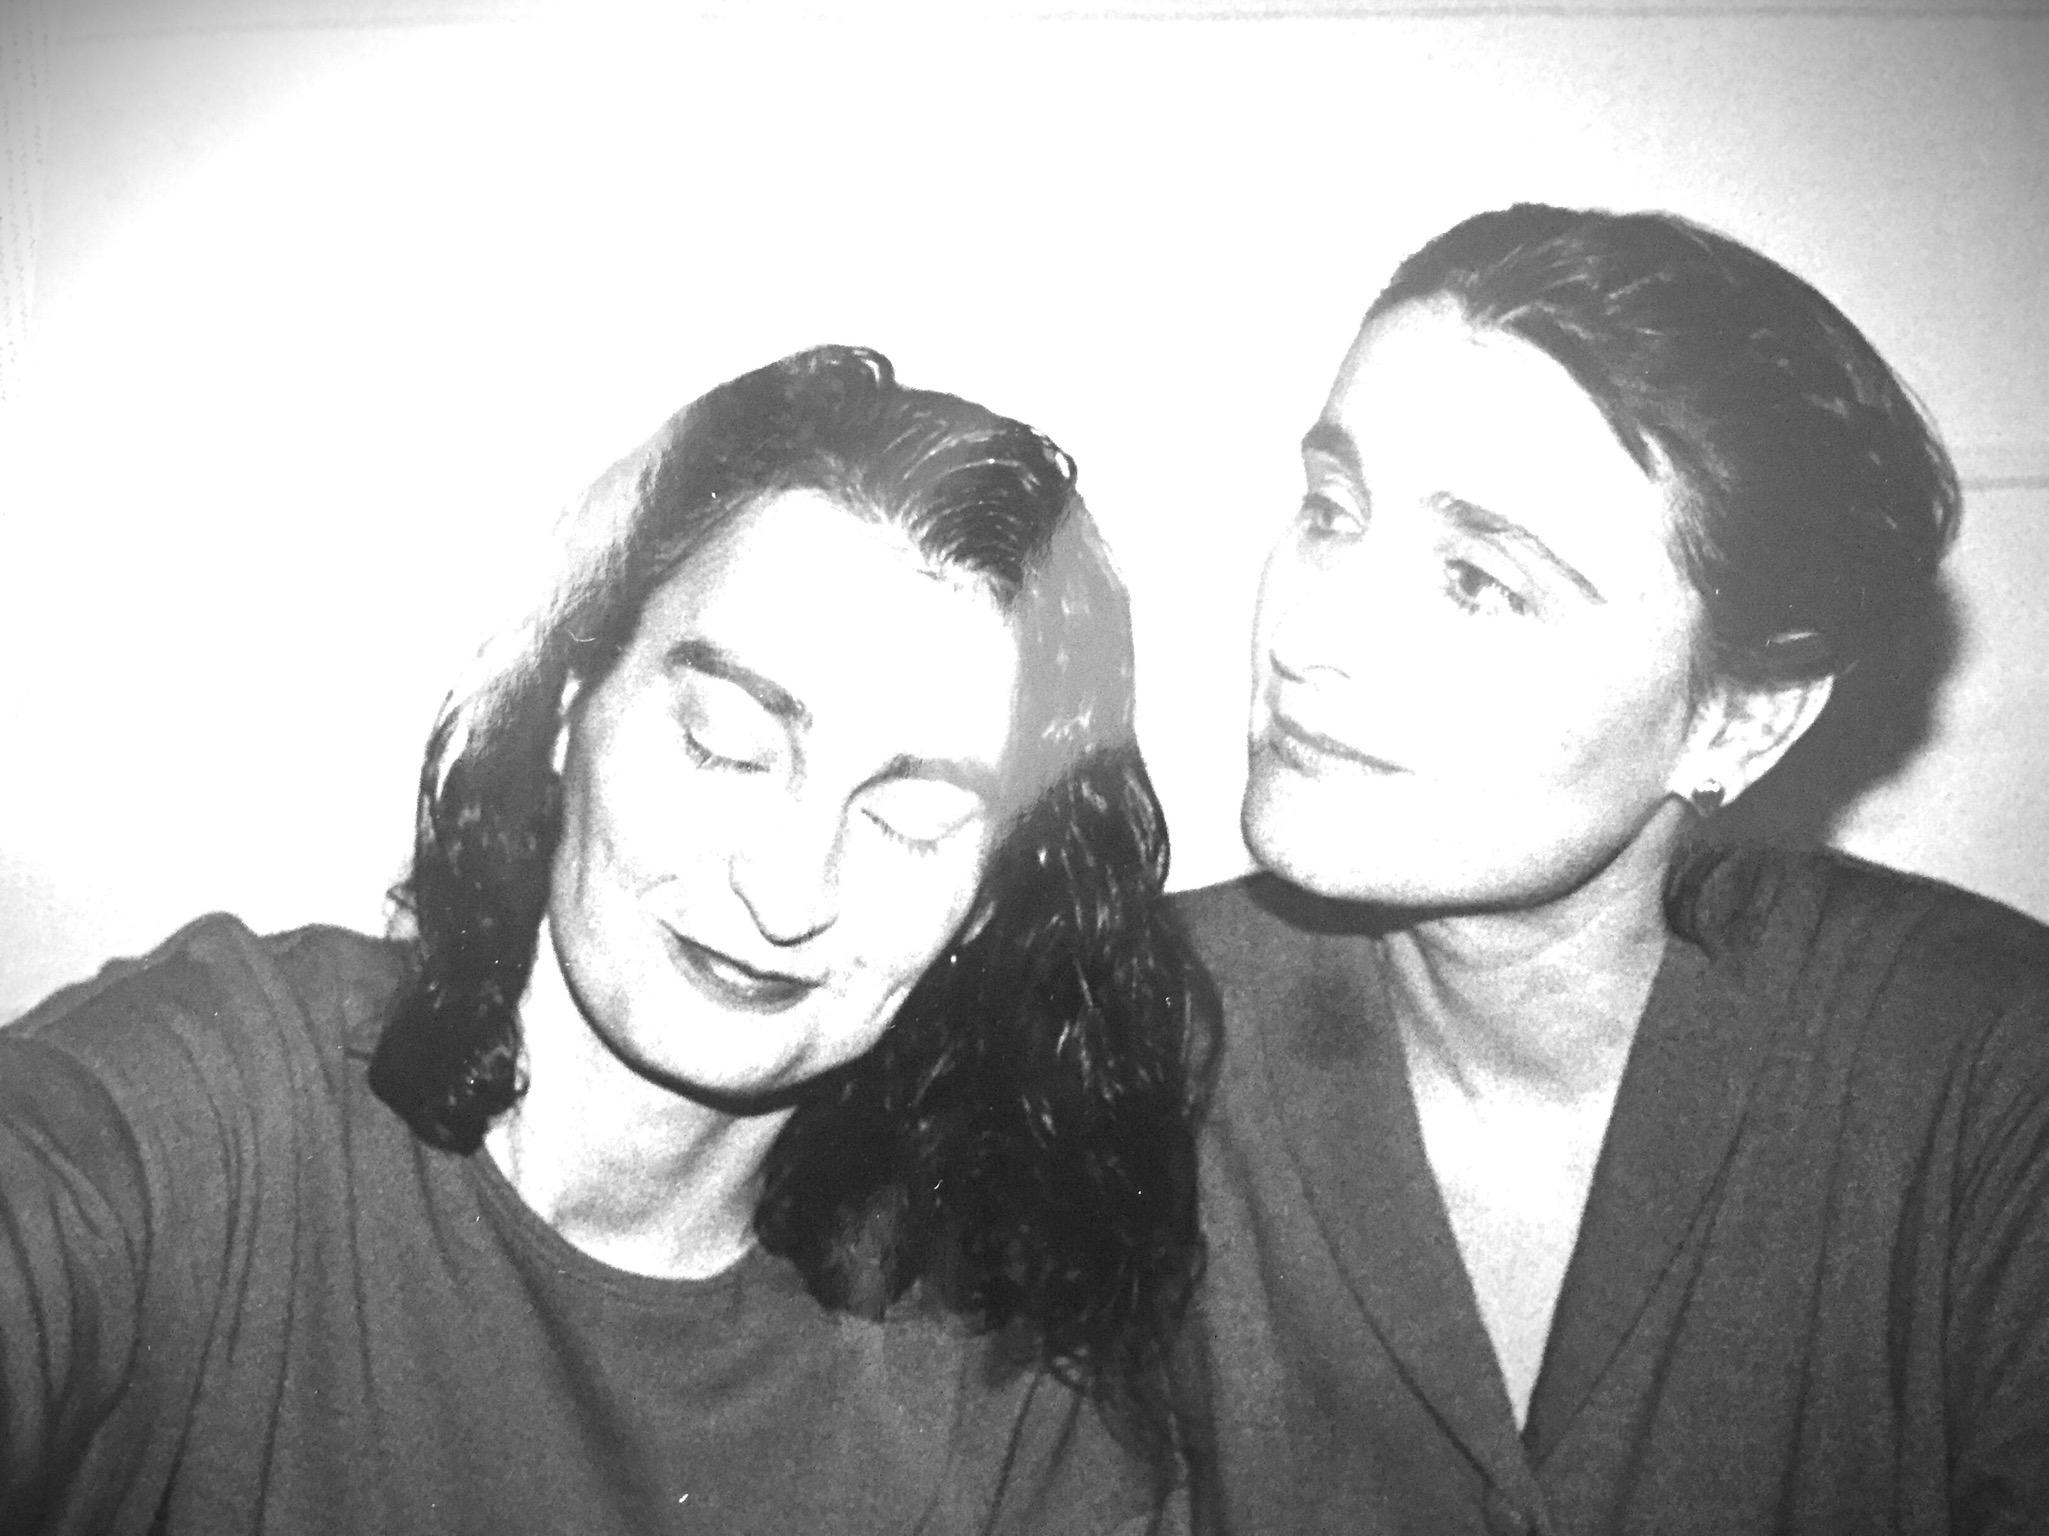 T Begley (left) and Olga Broumas (right)